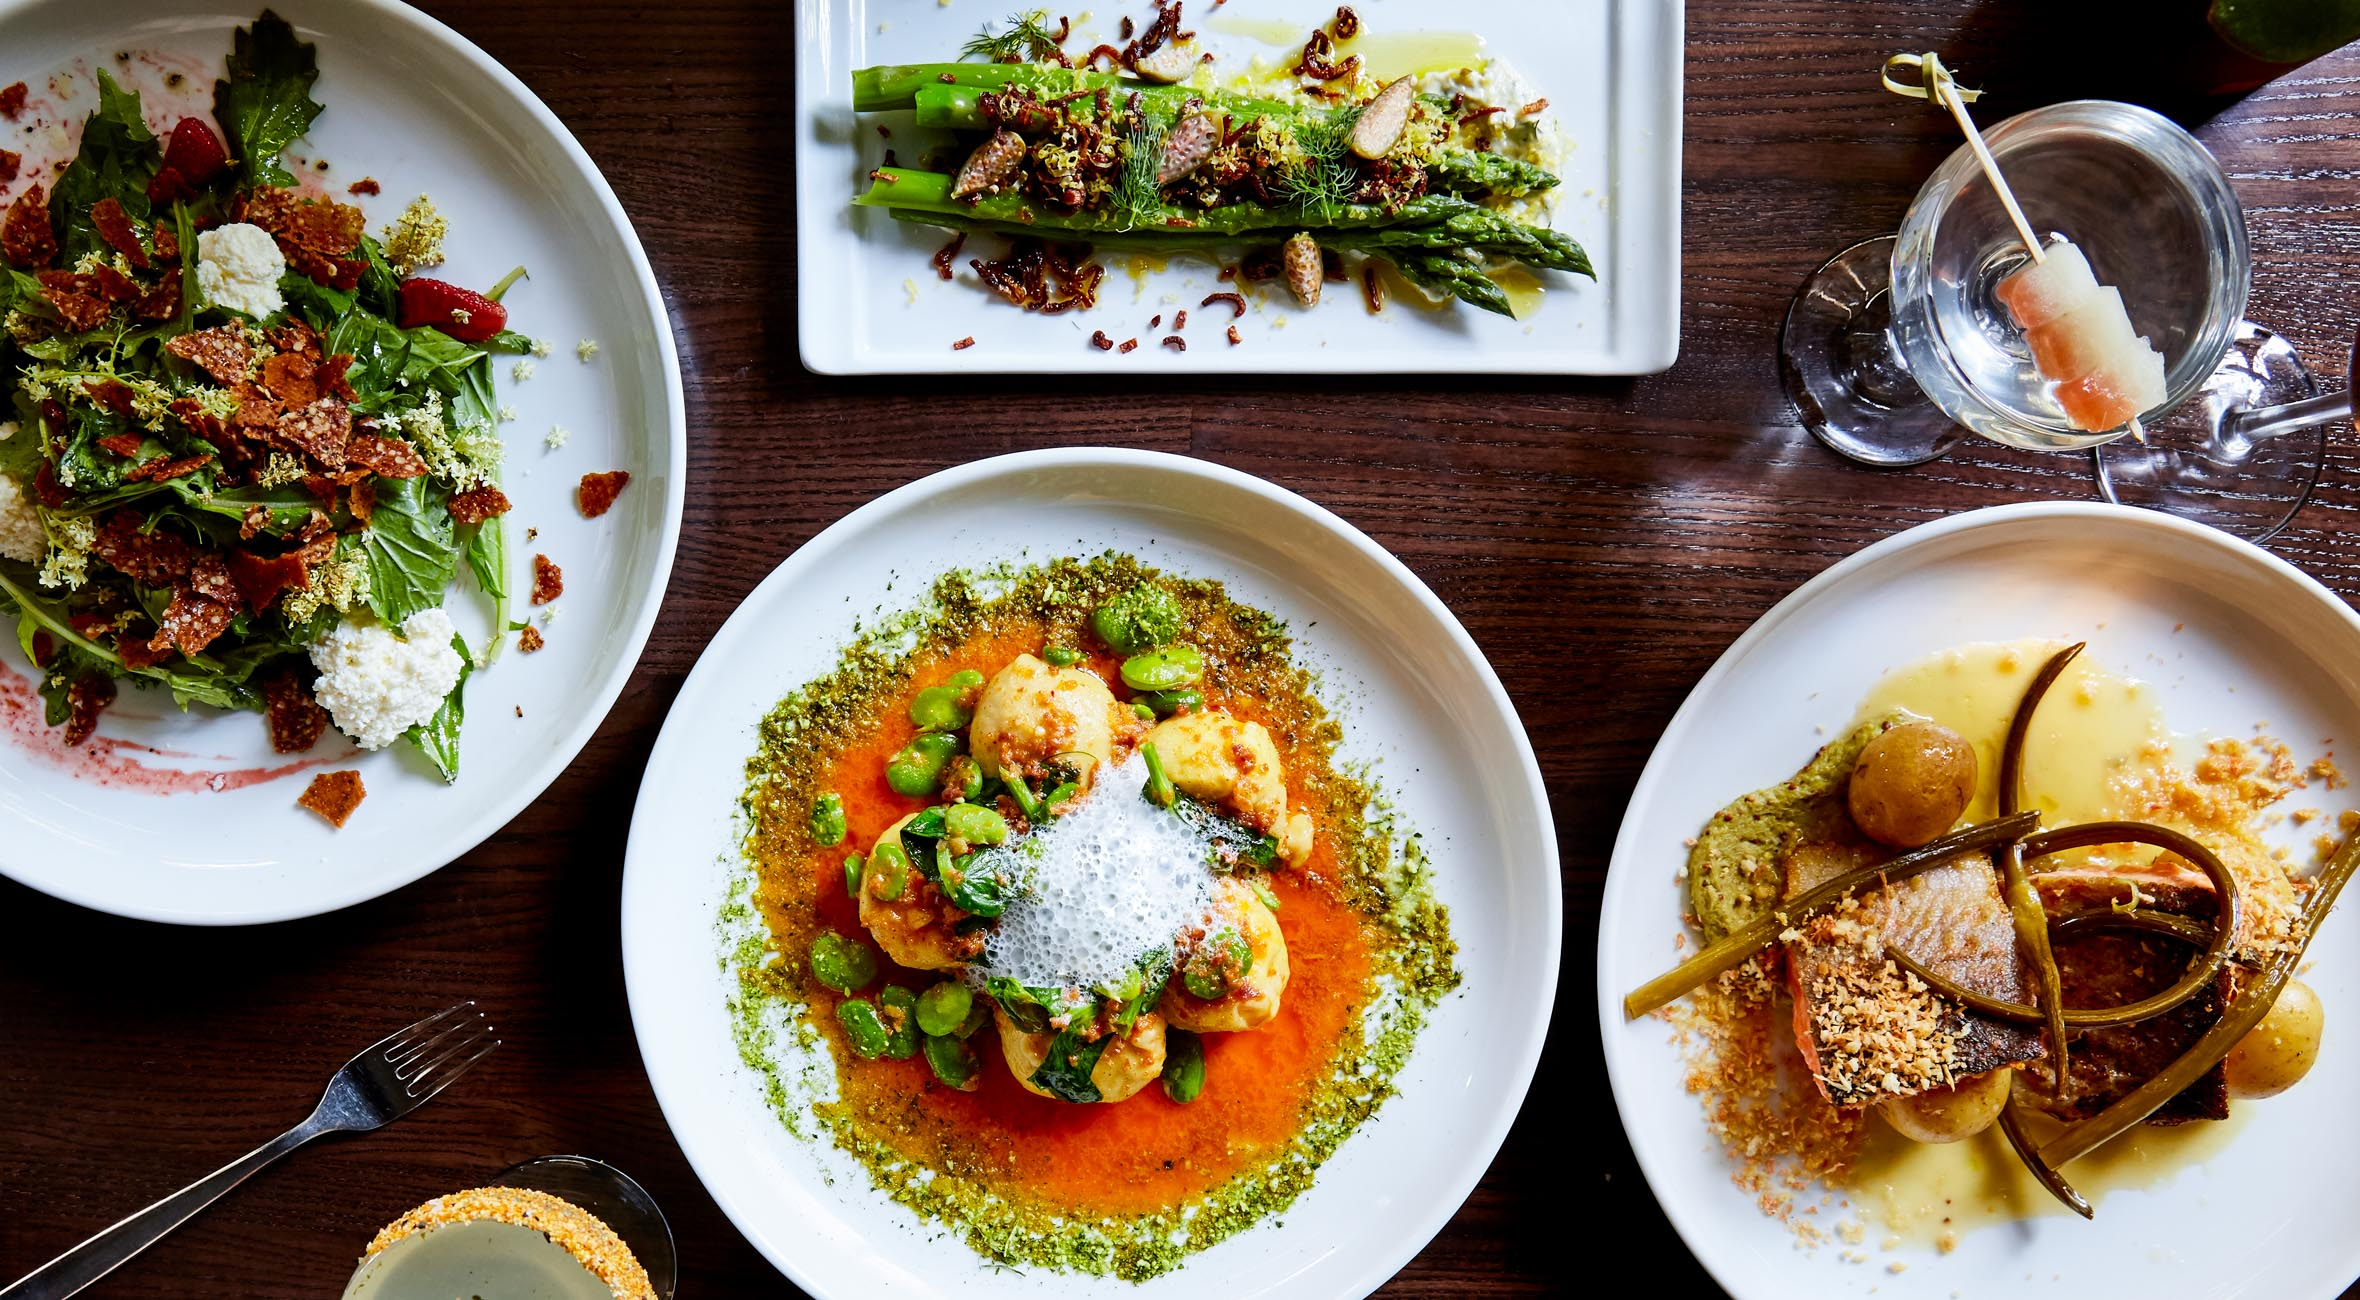 Choose Whatever You Like at Prospect – Everything From Oysters to Truffled Deviled Eggs, Burrata, Arctic Char, Mushroom Risotto and Wines etc.